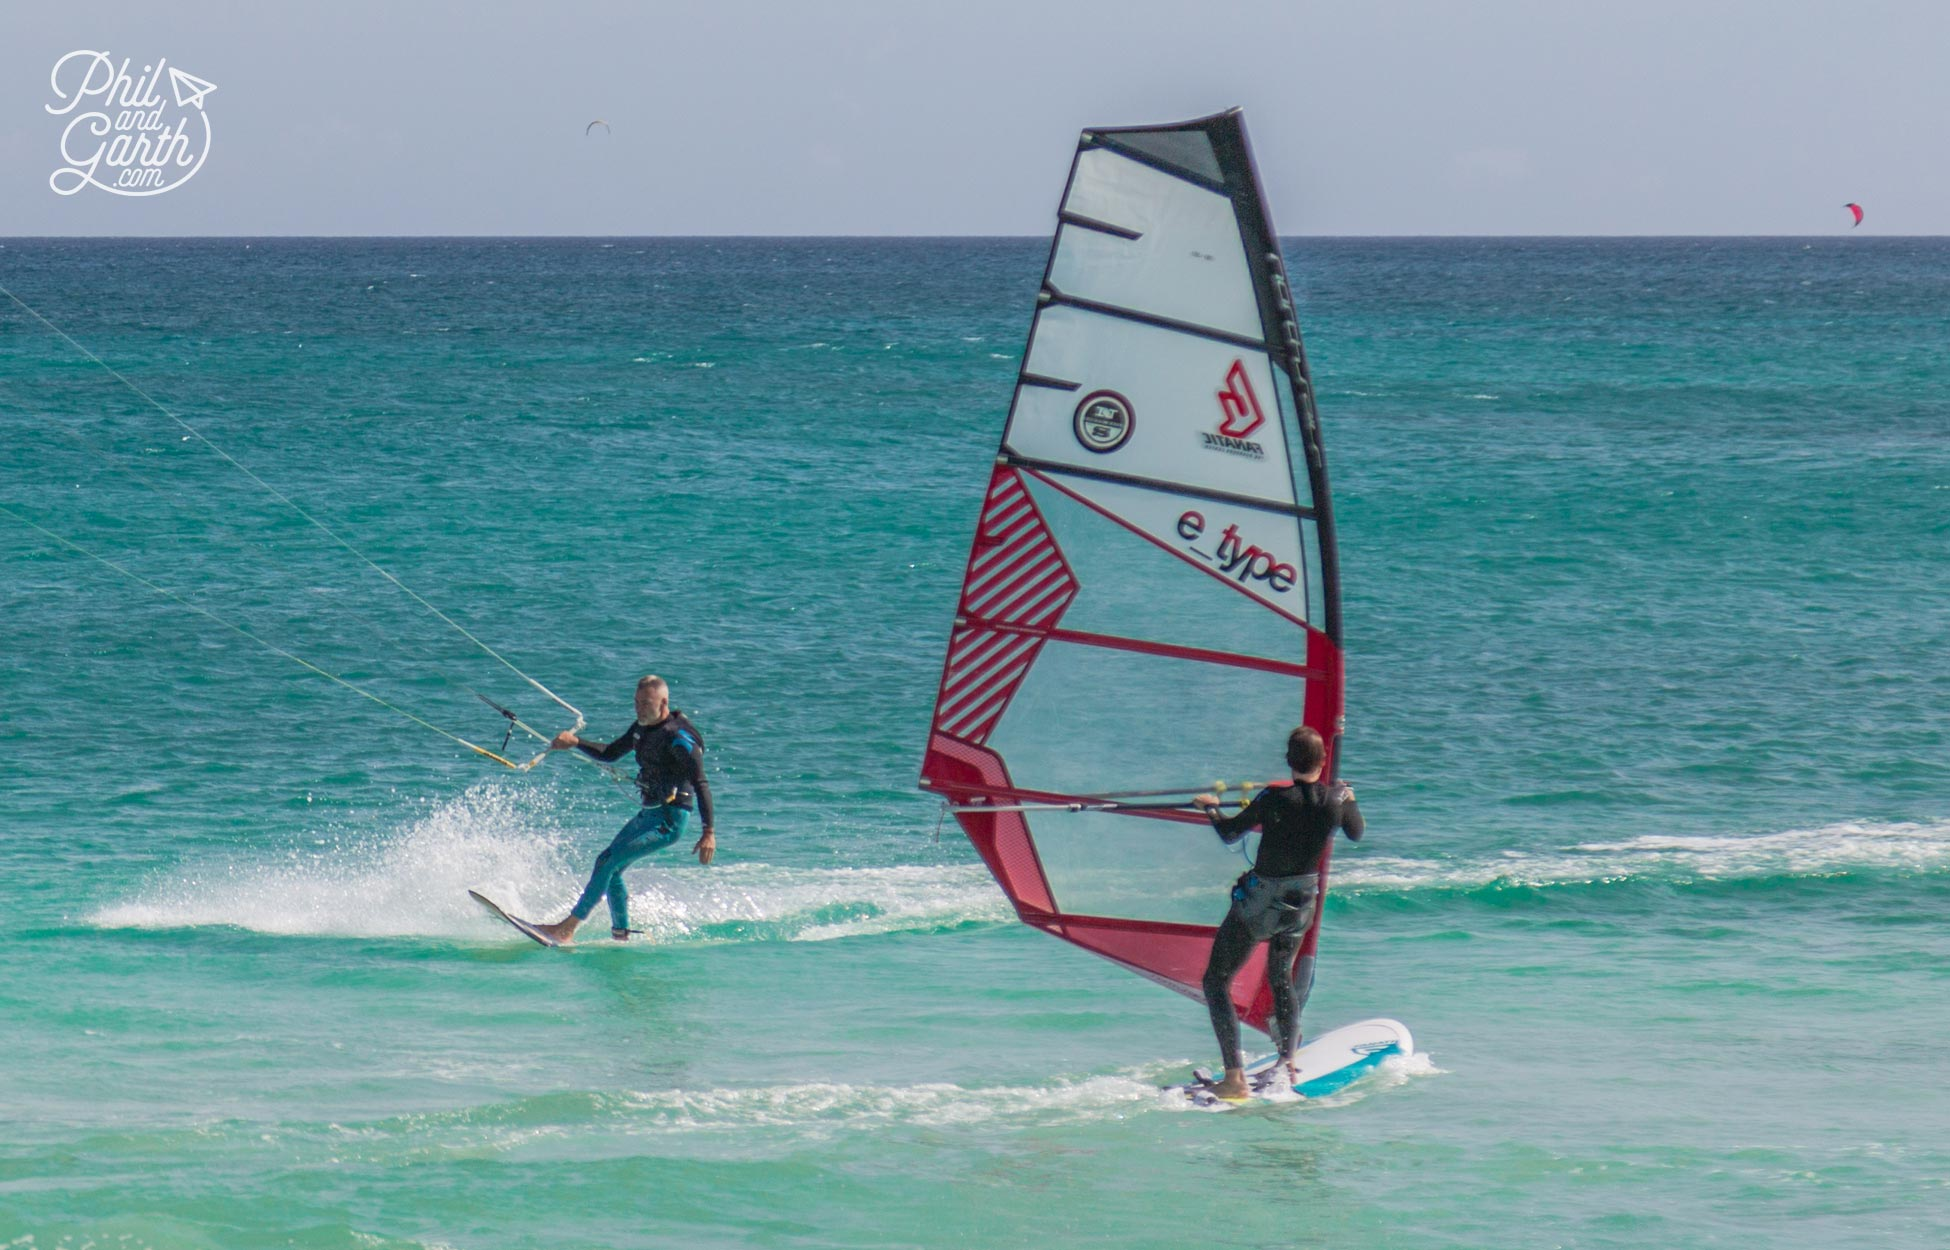 Fuerteventura is really popular with wind and kite surfers